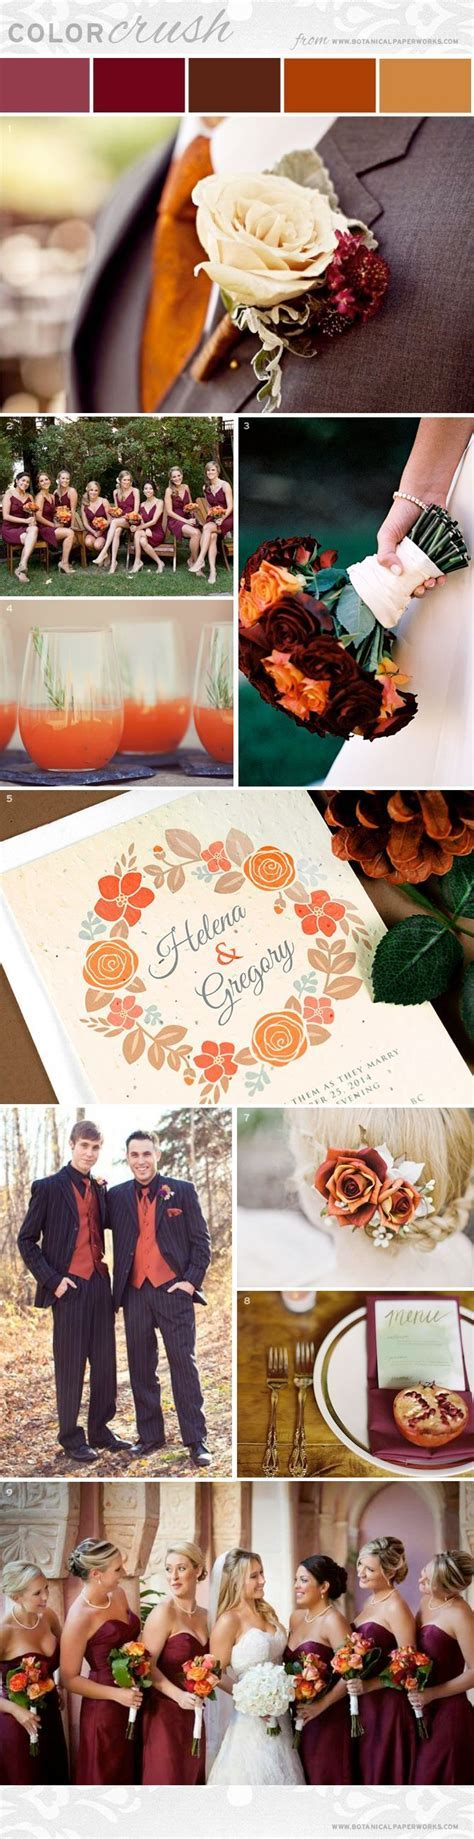 17 Best ideas about Green Fall Weddings on Pinterest